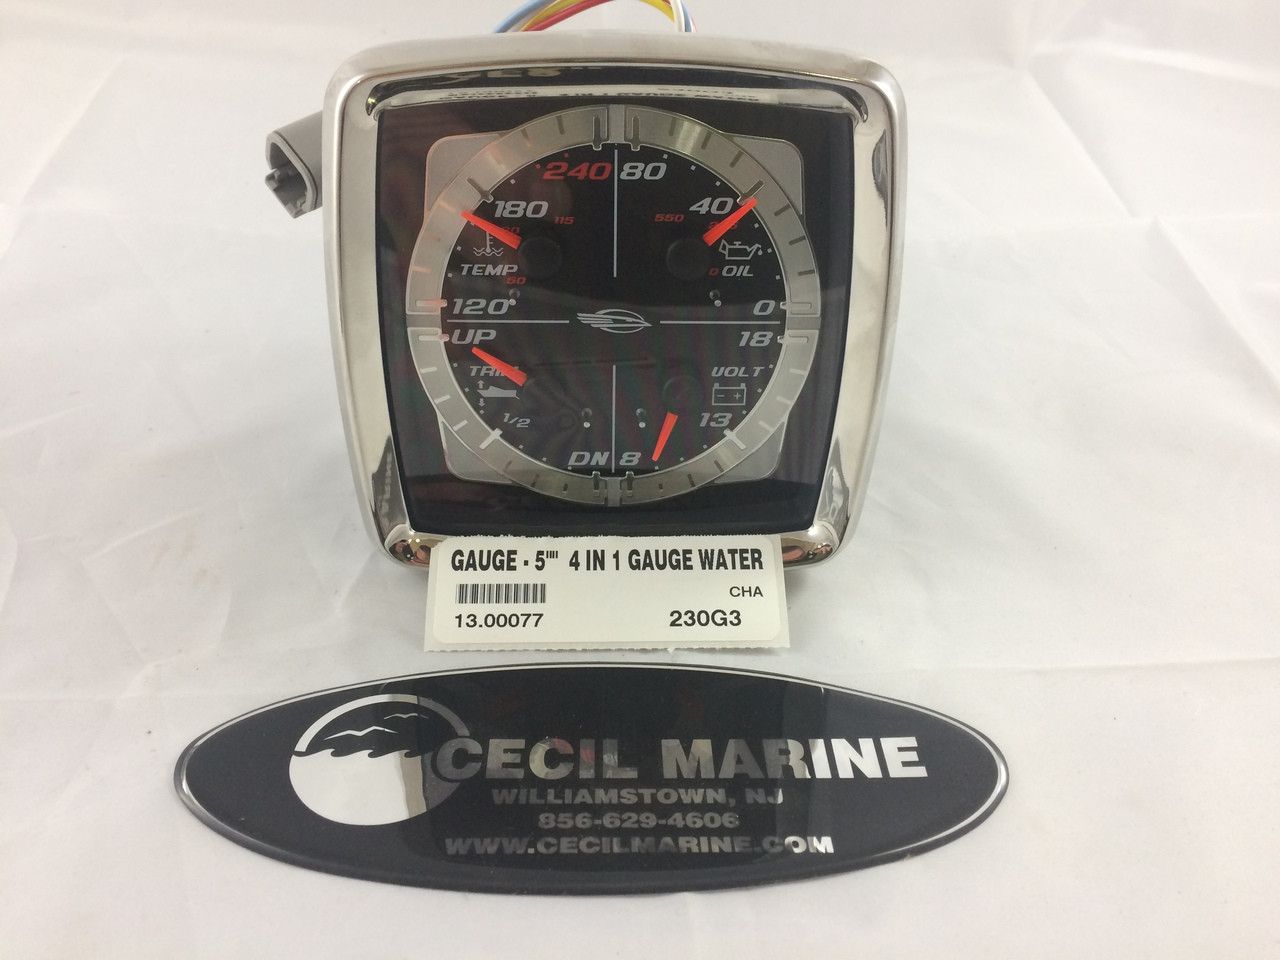 Gauge 4 In 1 5 For Mercruiser Only 1300077 Cecil Marine Tachometer Image